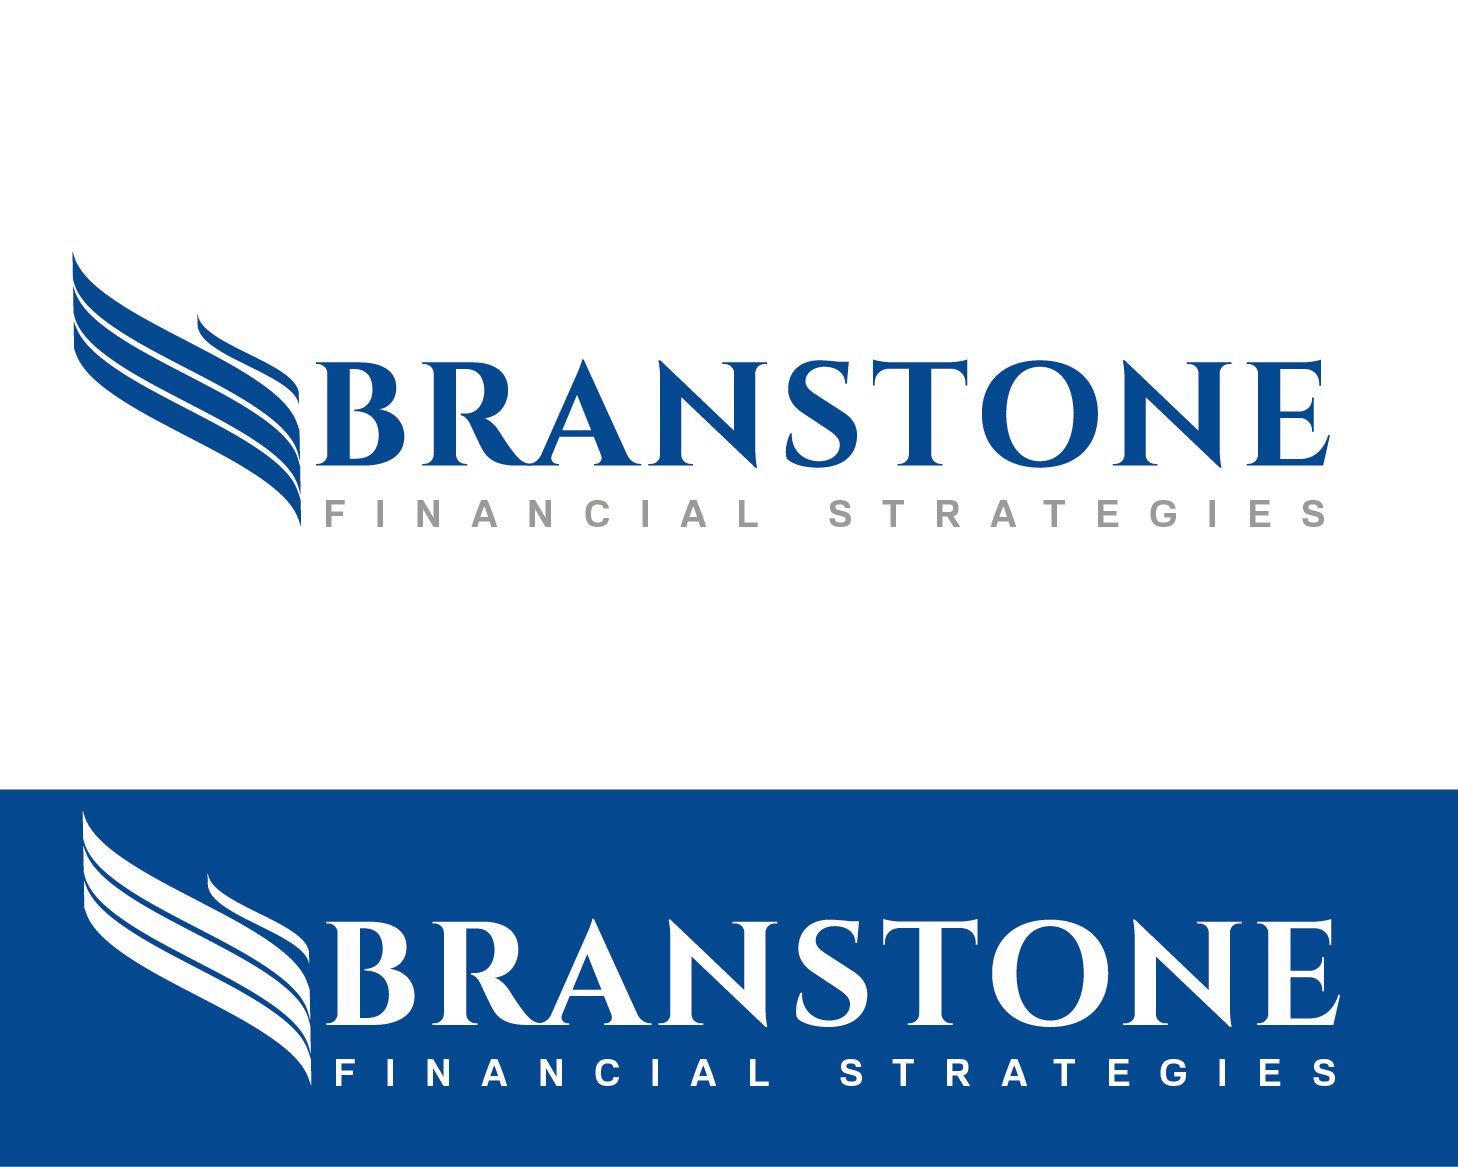 Logo Design by VENTSISLAV KOVACHEV - Entry No. 210 in the Logo Design Contest Inspiring Logo Design for Branstone Financial Strategies.